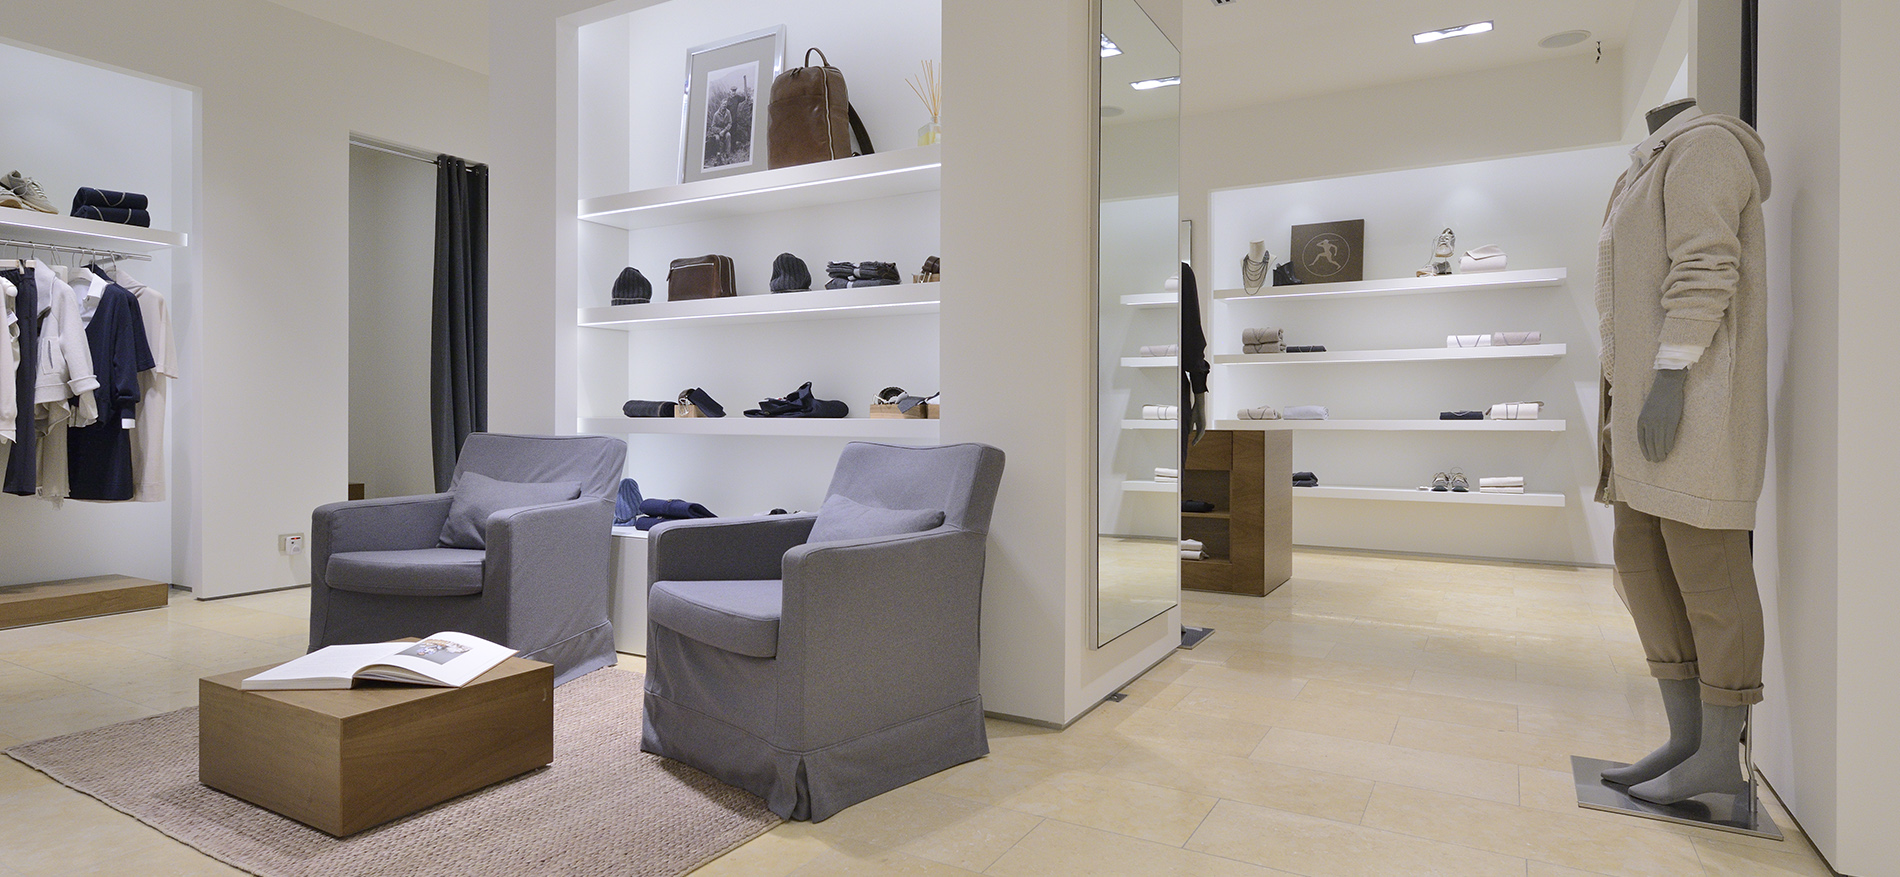 Agencement int rieur pour la boutique de mode for Design d interieur boutique